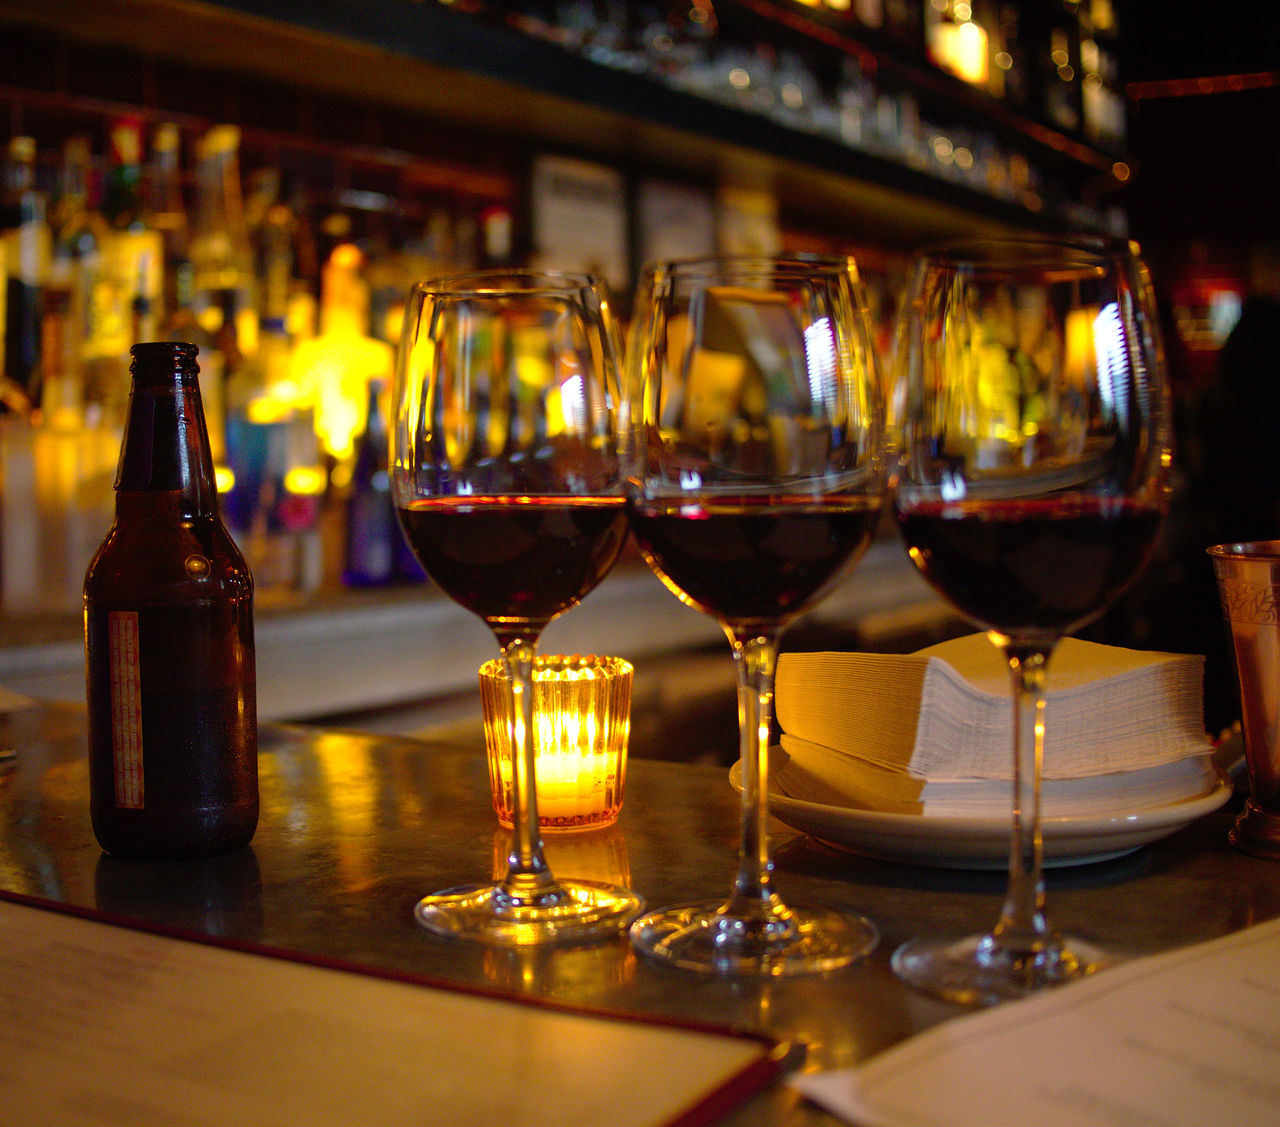 wineglass, alcohol, wine, red wine, bottle, refreshment, drink, alcoholic drink, food and drink, table, indoors, wine bottle, drinking glass, focus on foreground, freshness, close-up, no people, illuminated, barrel